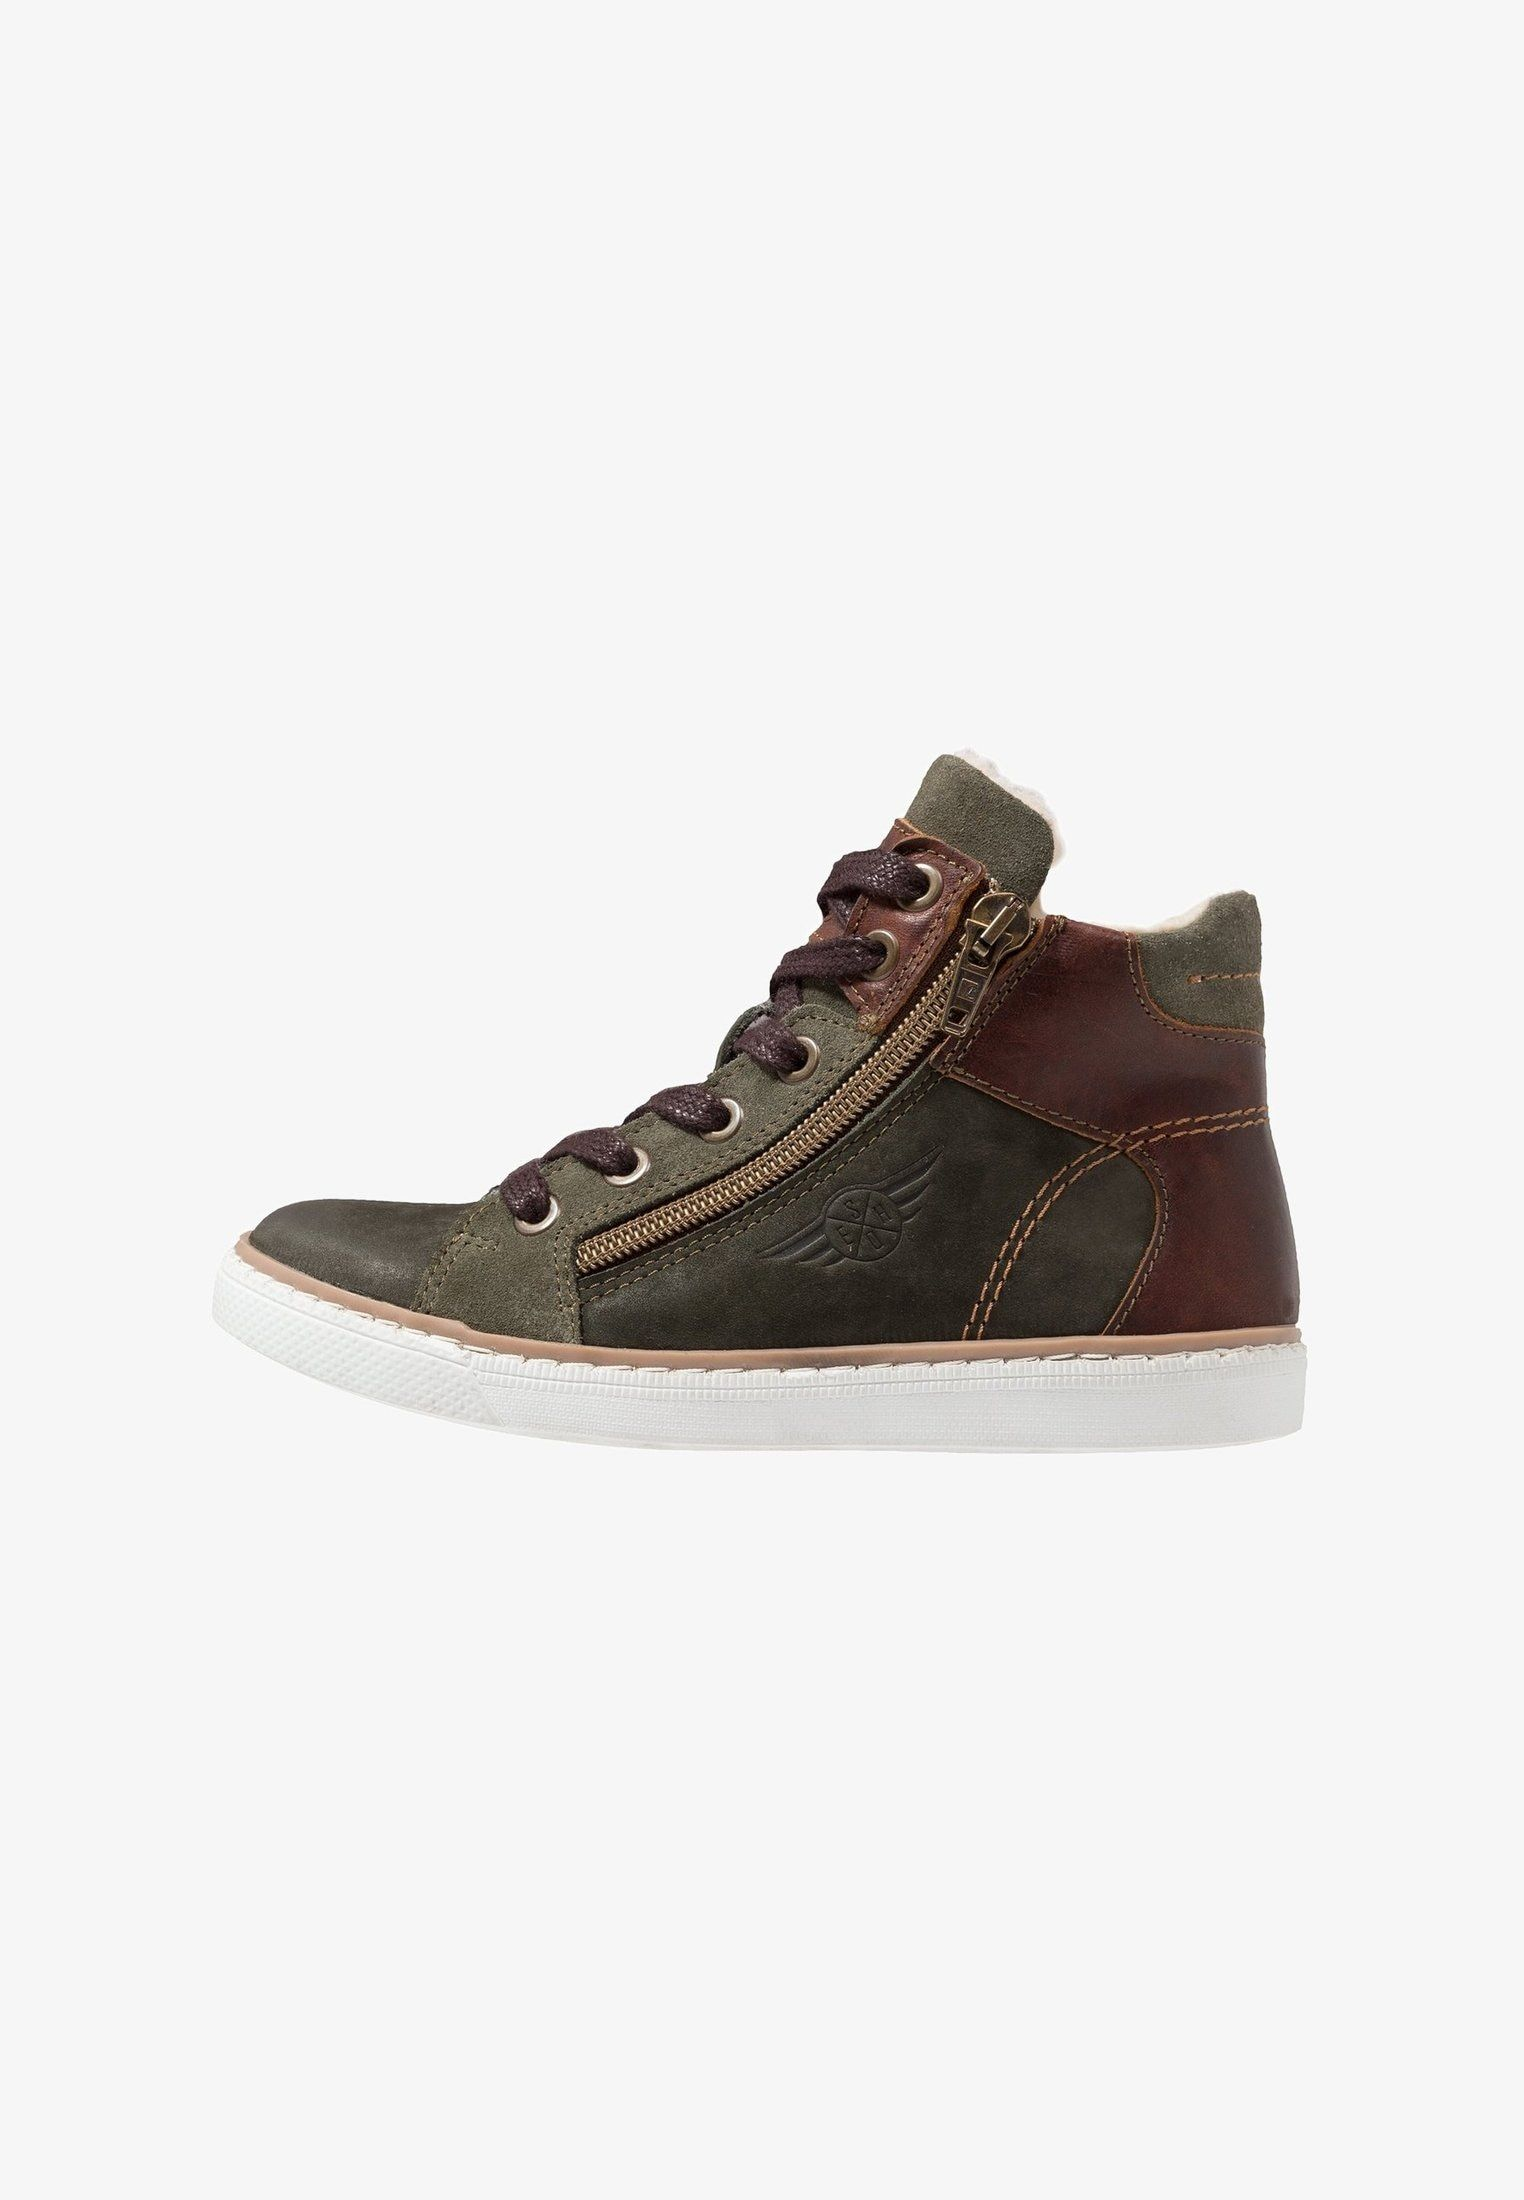 best supplier hot product many styles High-top trainers - dark olive @ Zalando.co.uk 🛒   boys ...